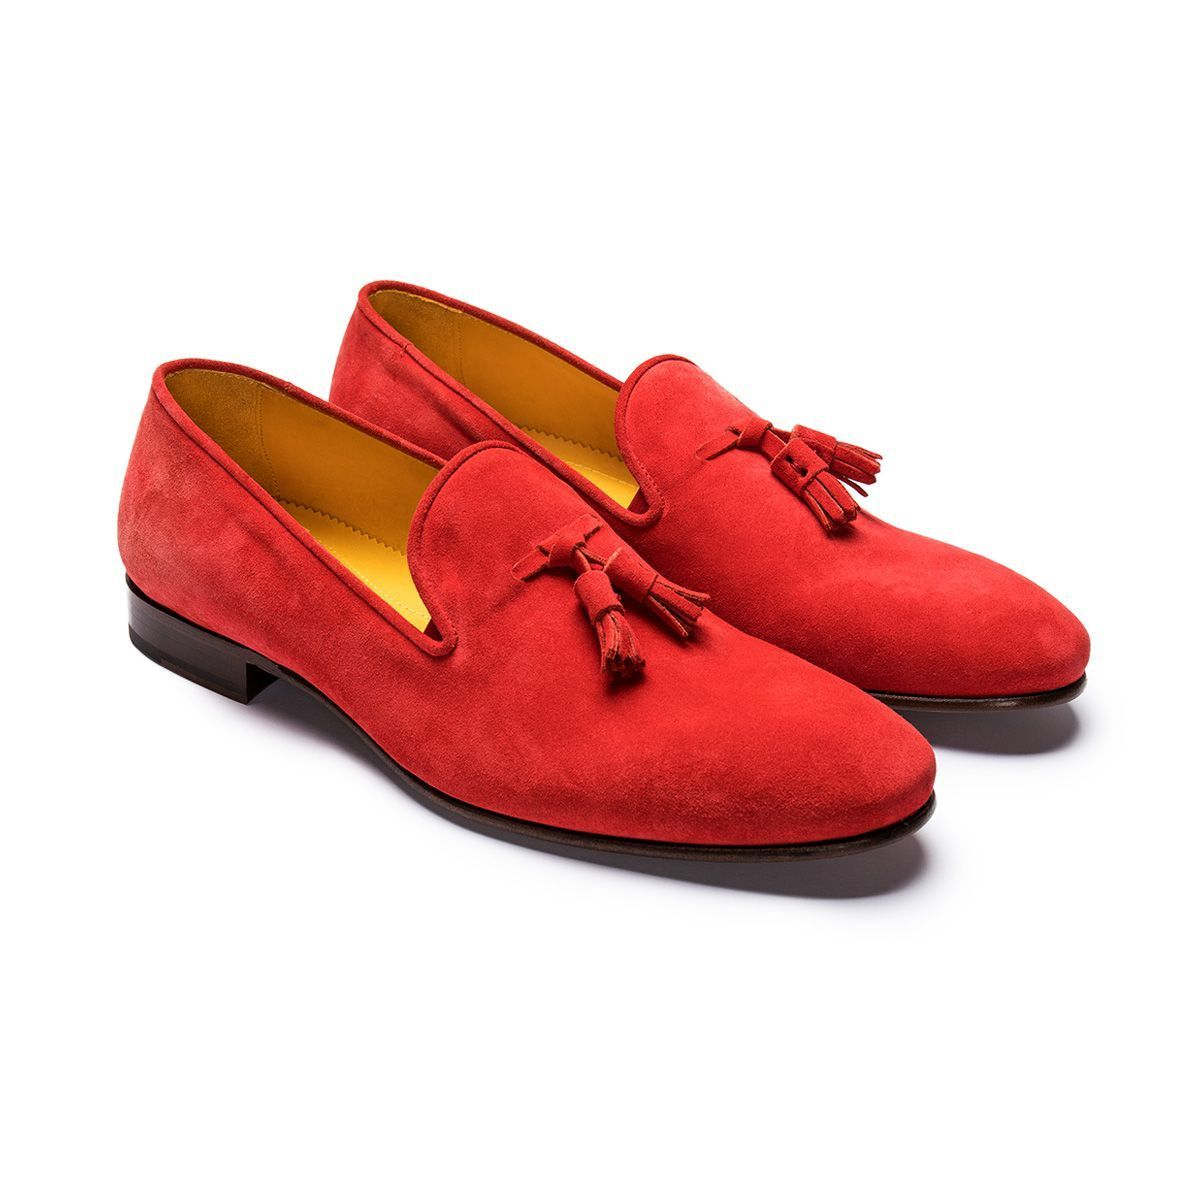 Handmade Men's Red Suede Slip Ons Loafer Tassel Shoes